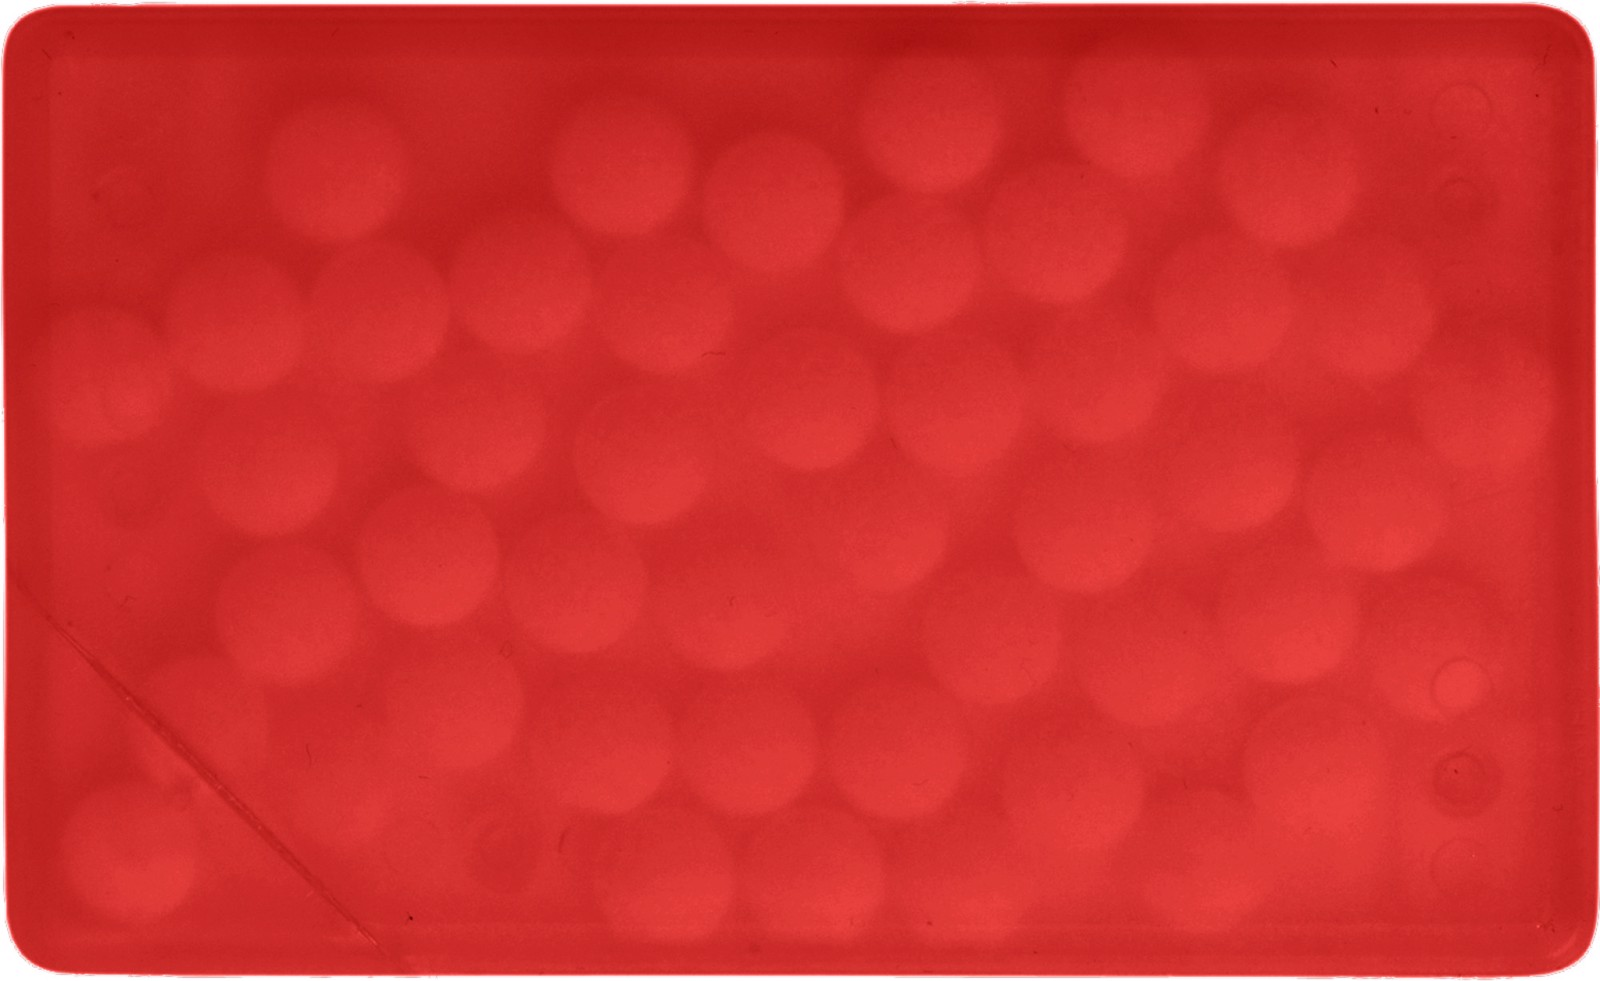 PP case with mints - Red